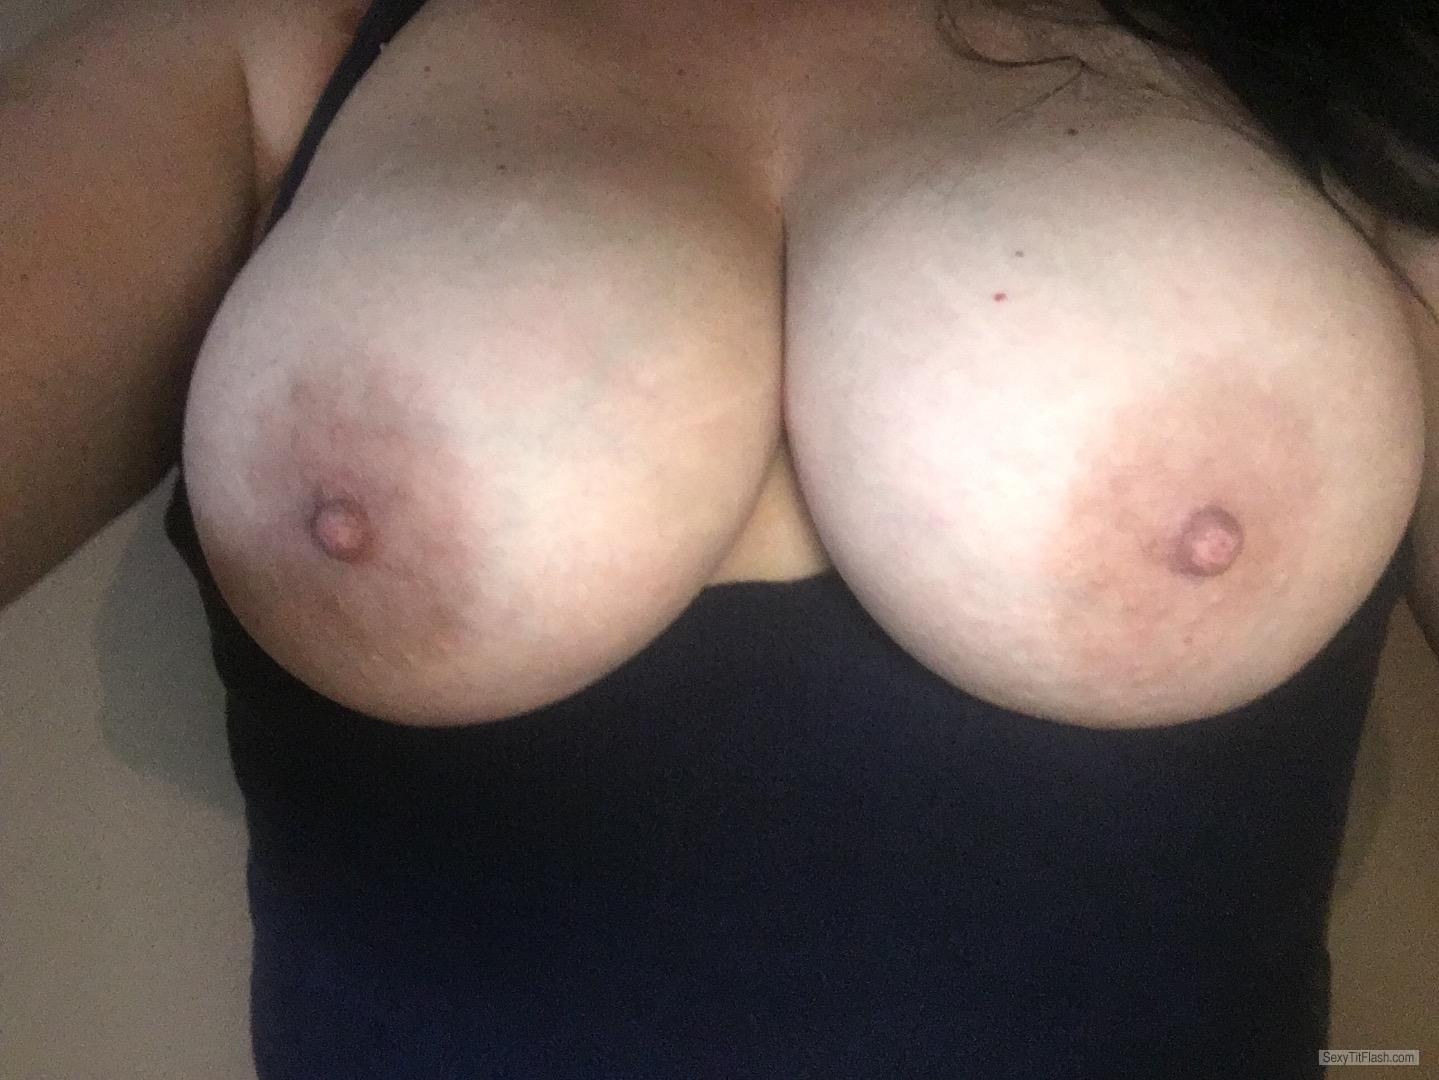 Tit Flash: Wife's Tanlined Big Tits (Selfie) - Topless Shan from United States